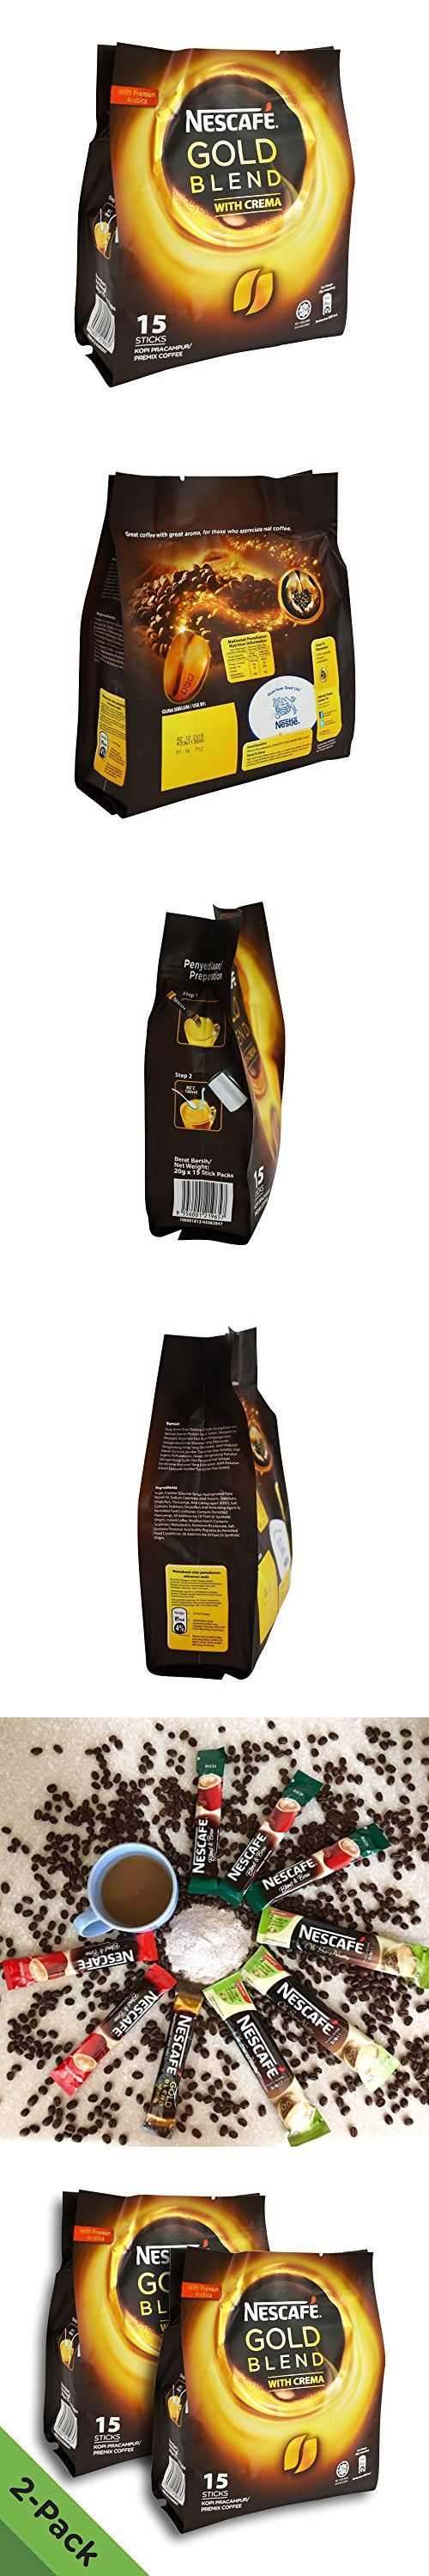 2 Pack Nescafe Gold Blend 3in1 Instant Coffee (30